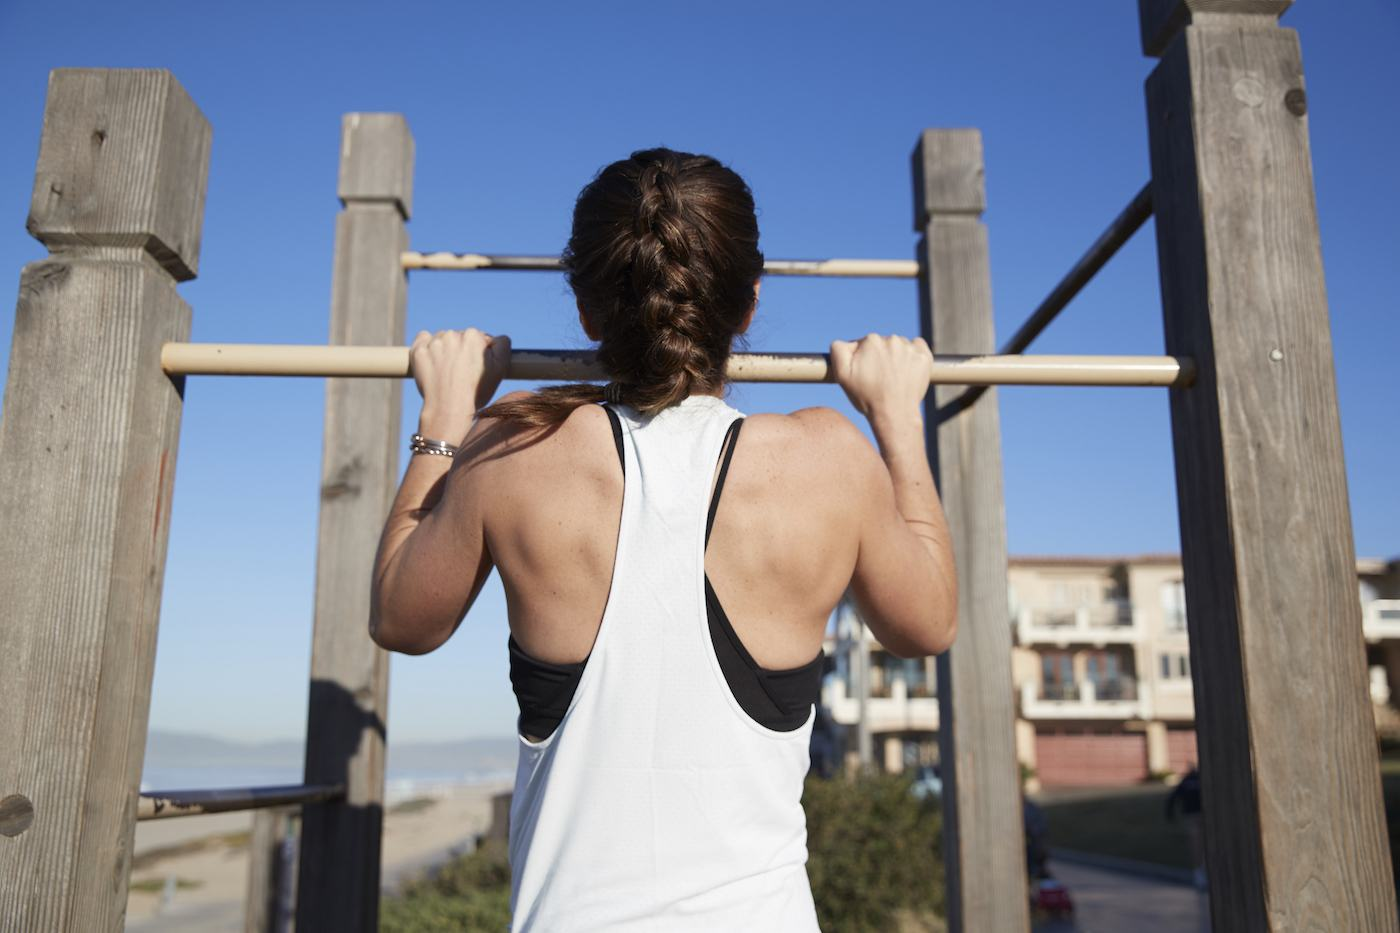 Can't do a single pull-up? Here's how to get strong enough to do 50